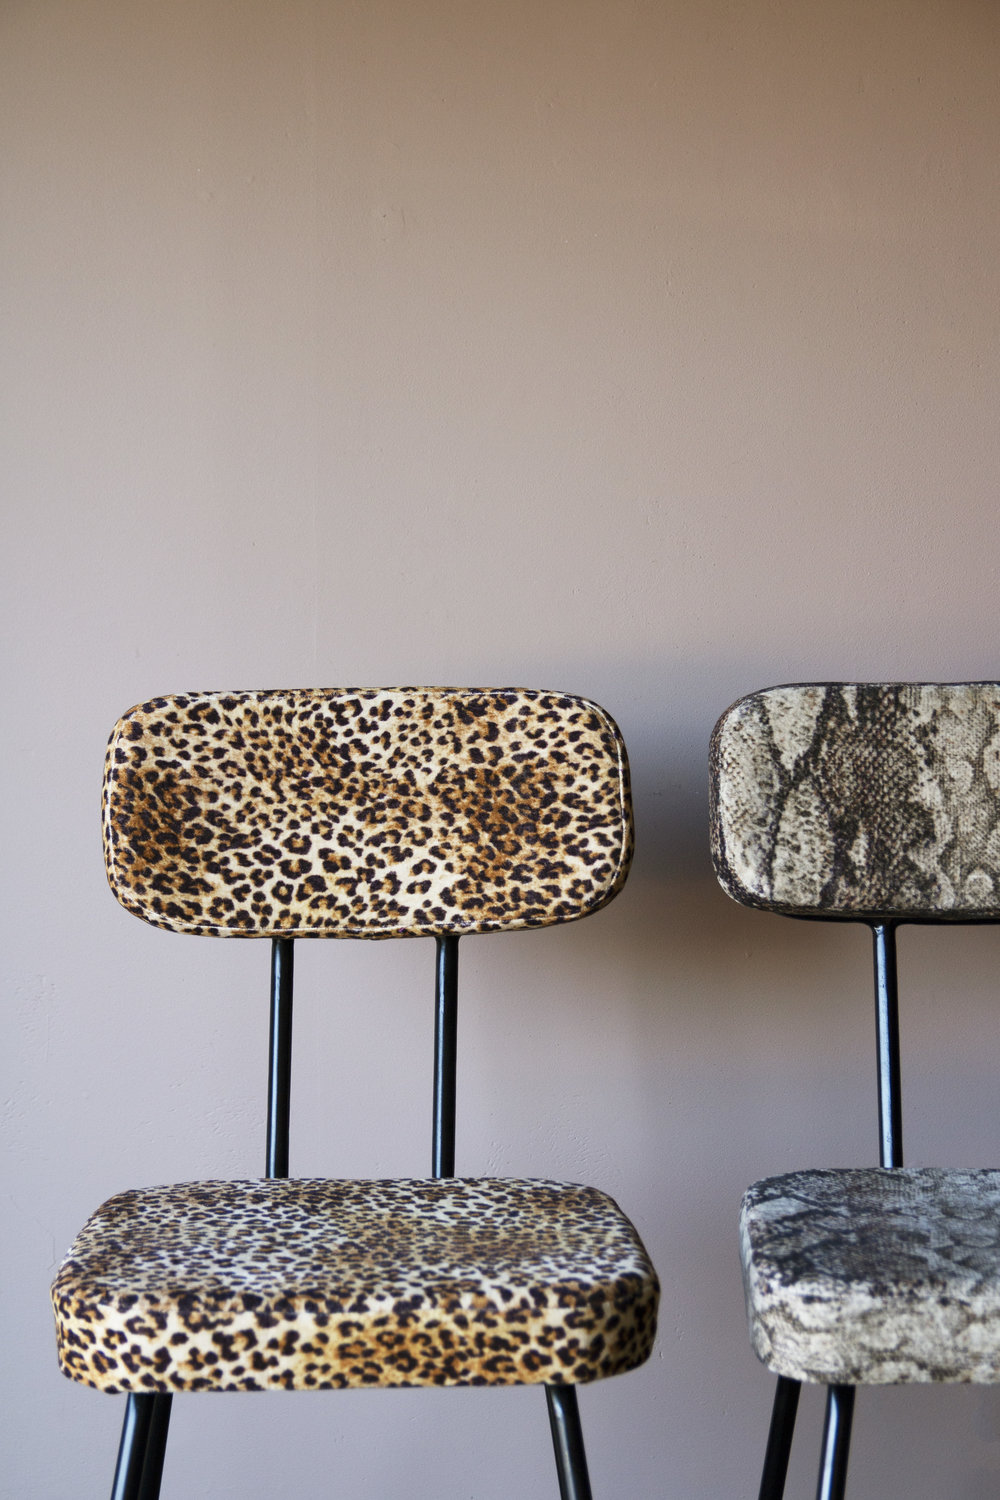 rockettstgeorge_velvet_leopard_snakeskin_dining_chair_lifestyle_light_highres.jpg